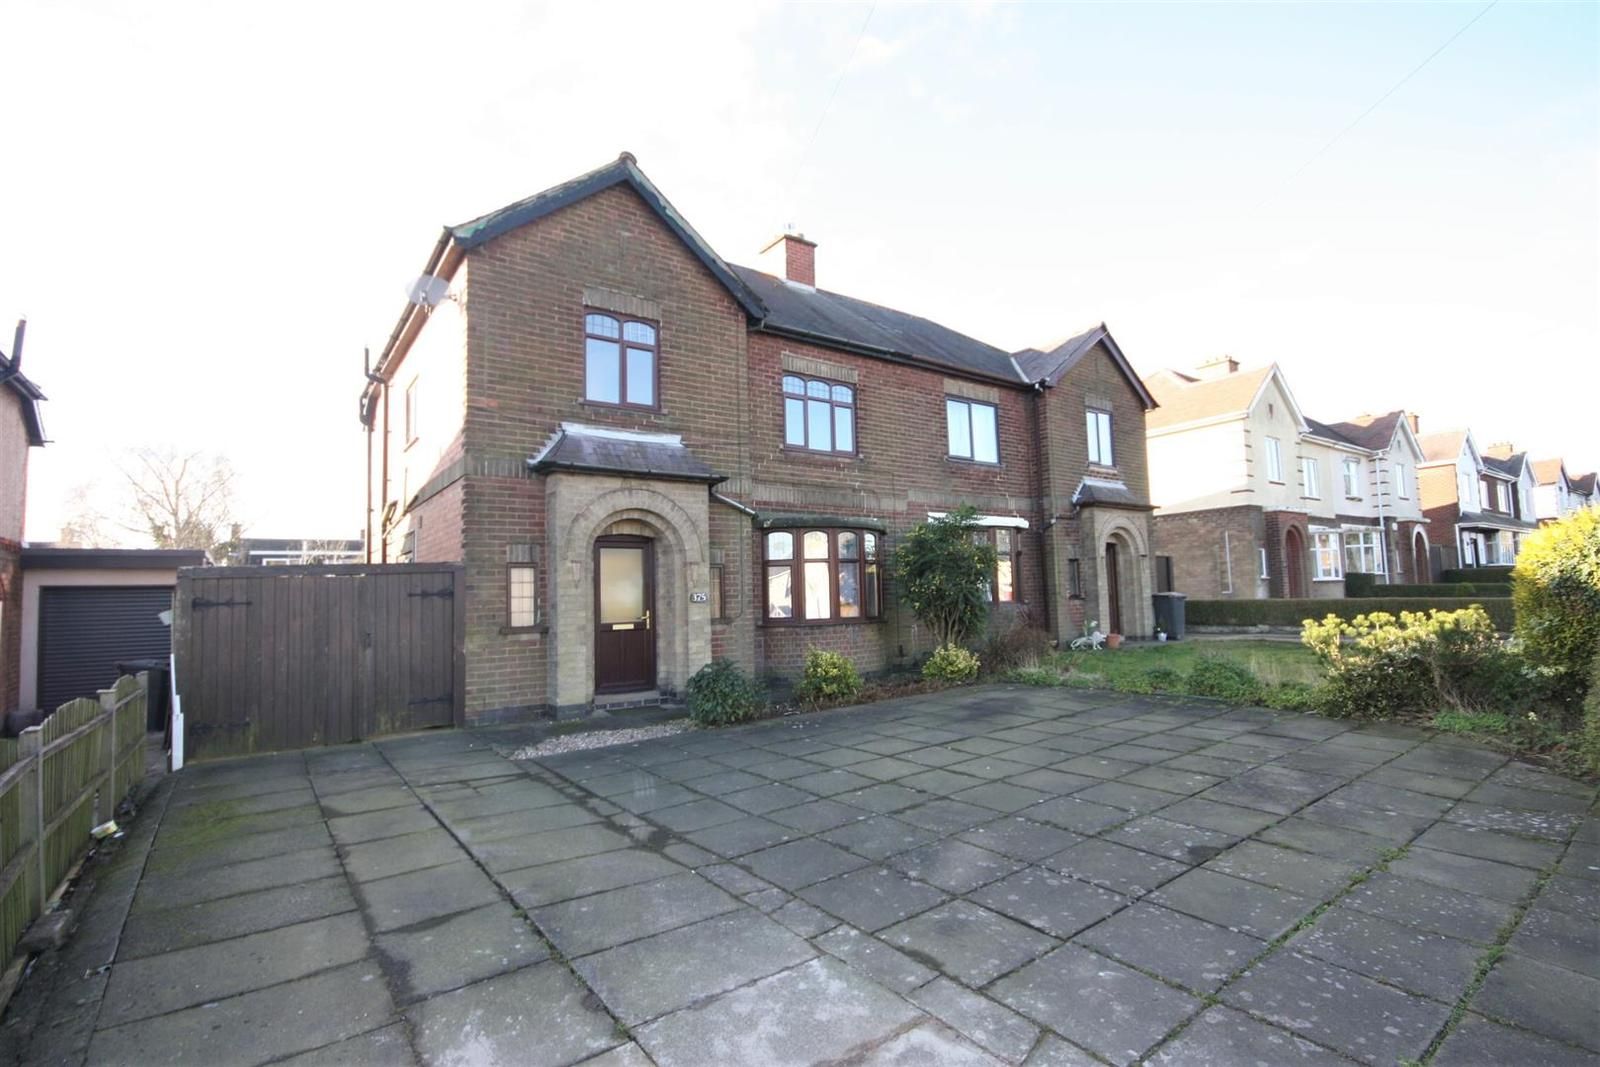 3 Bedrooms Property for sale in Ashby Road, Coalville